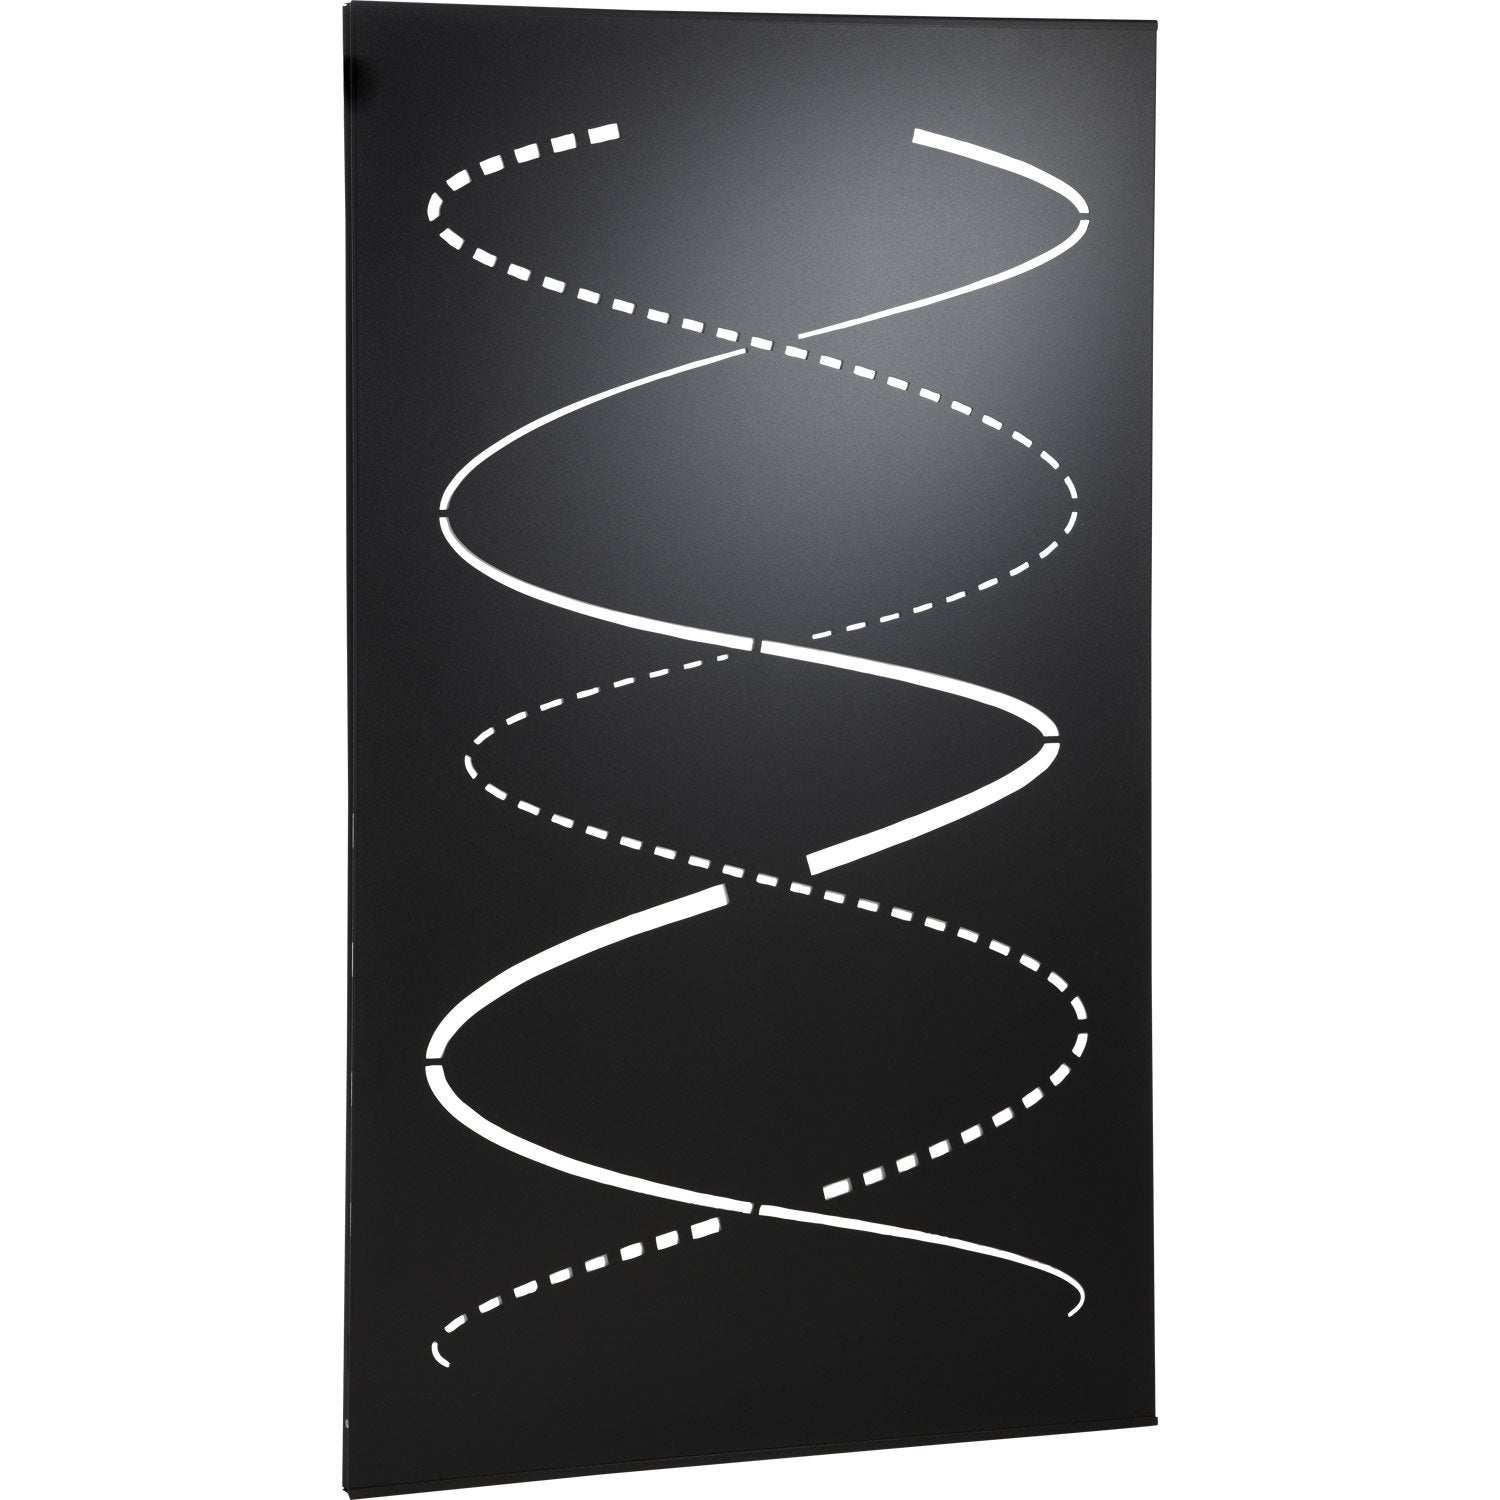 plaque de protection murale loom gris l60xh100 cm leroy merlin. Black Bedroom Furniture Sets. Home Design Ideas